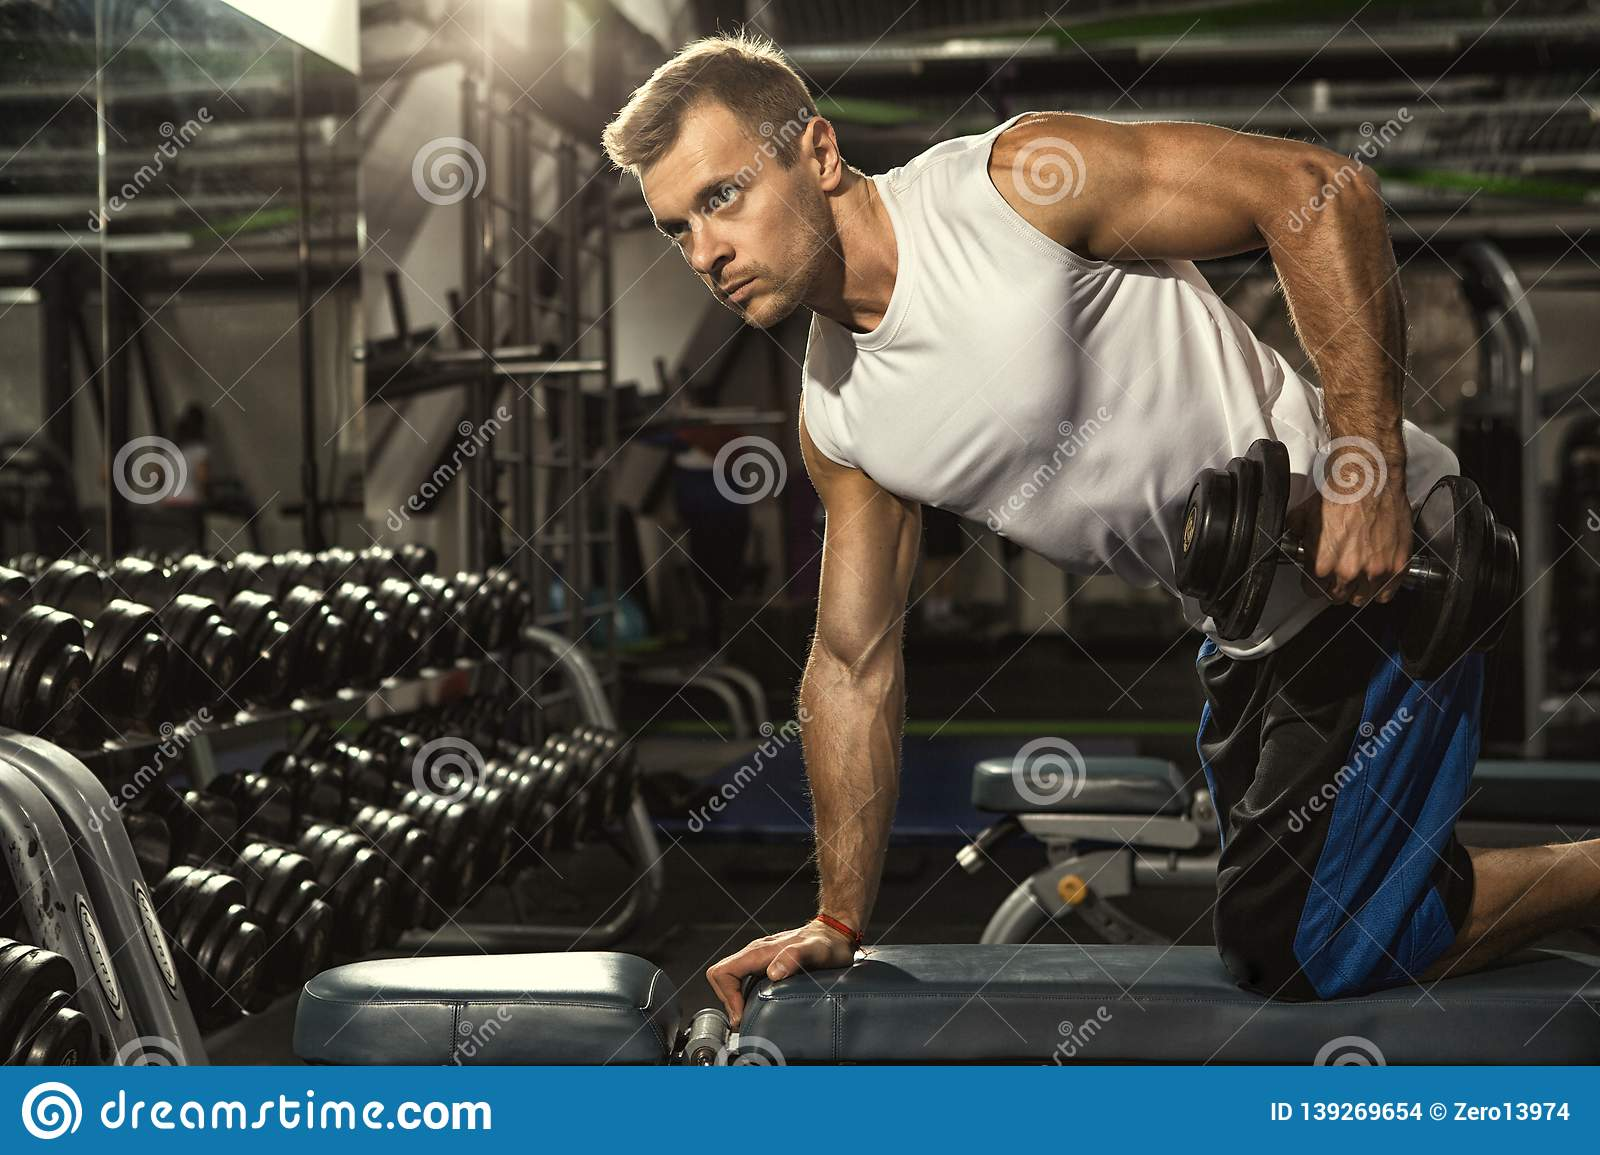 0b9c94f69028 Handsome young muscular athletic man exercising at the gym weightlifting  doing triceps deadlift exercise with dumbbells copyspace motivation  lifestyle ...